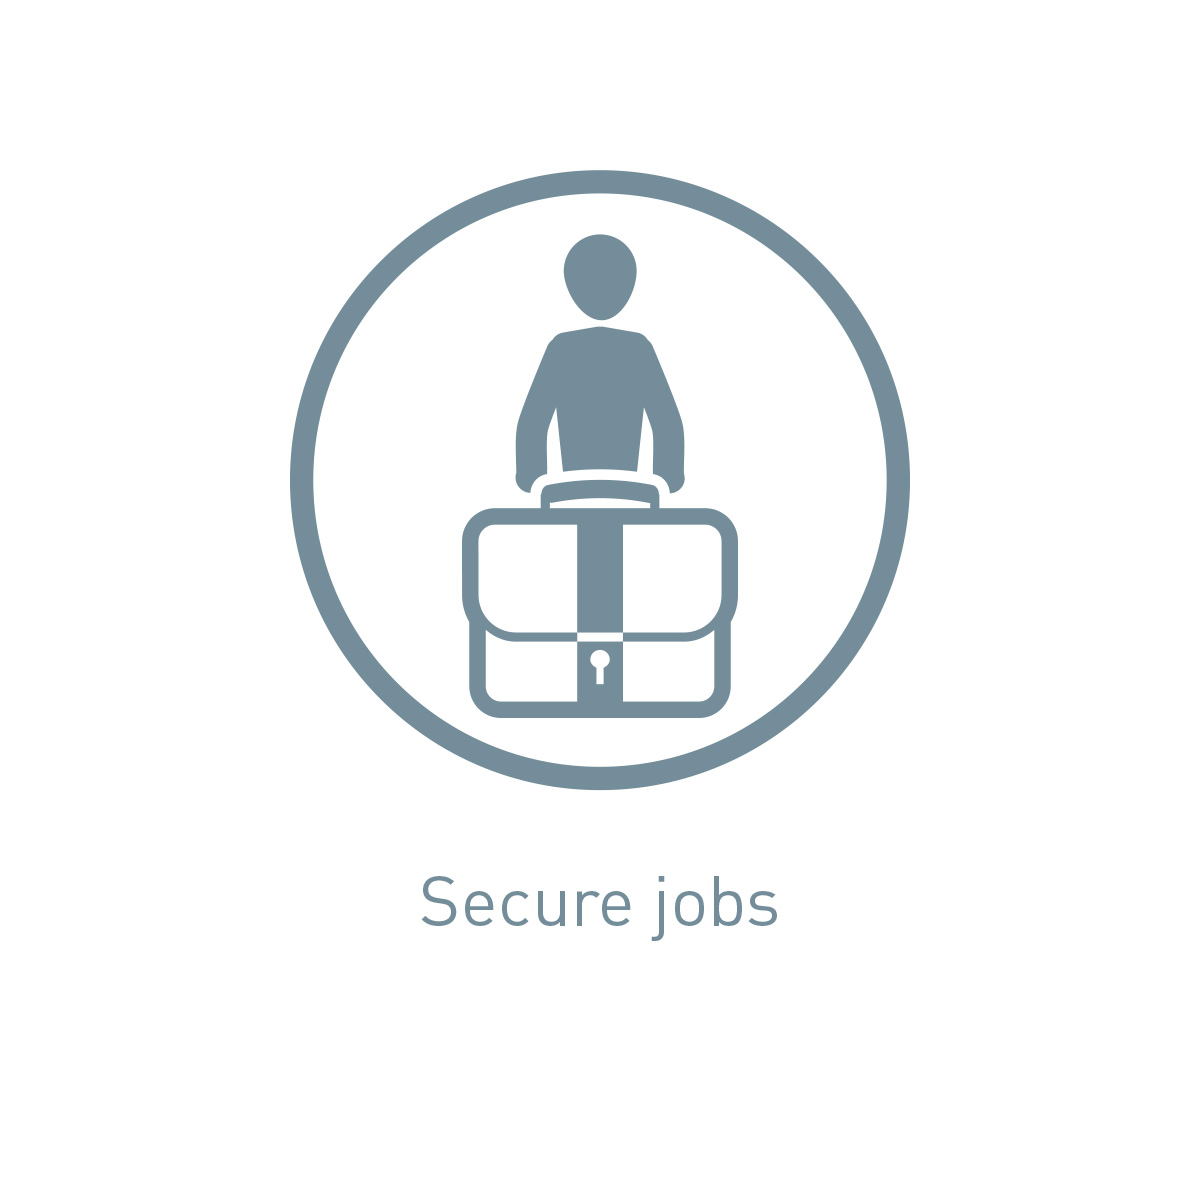 Icon Secure jobs